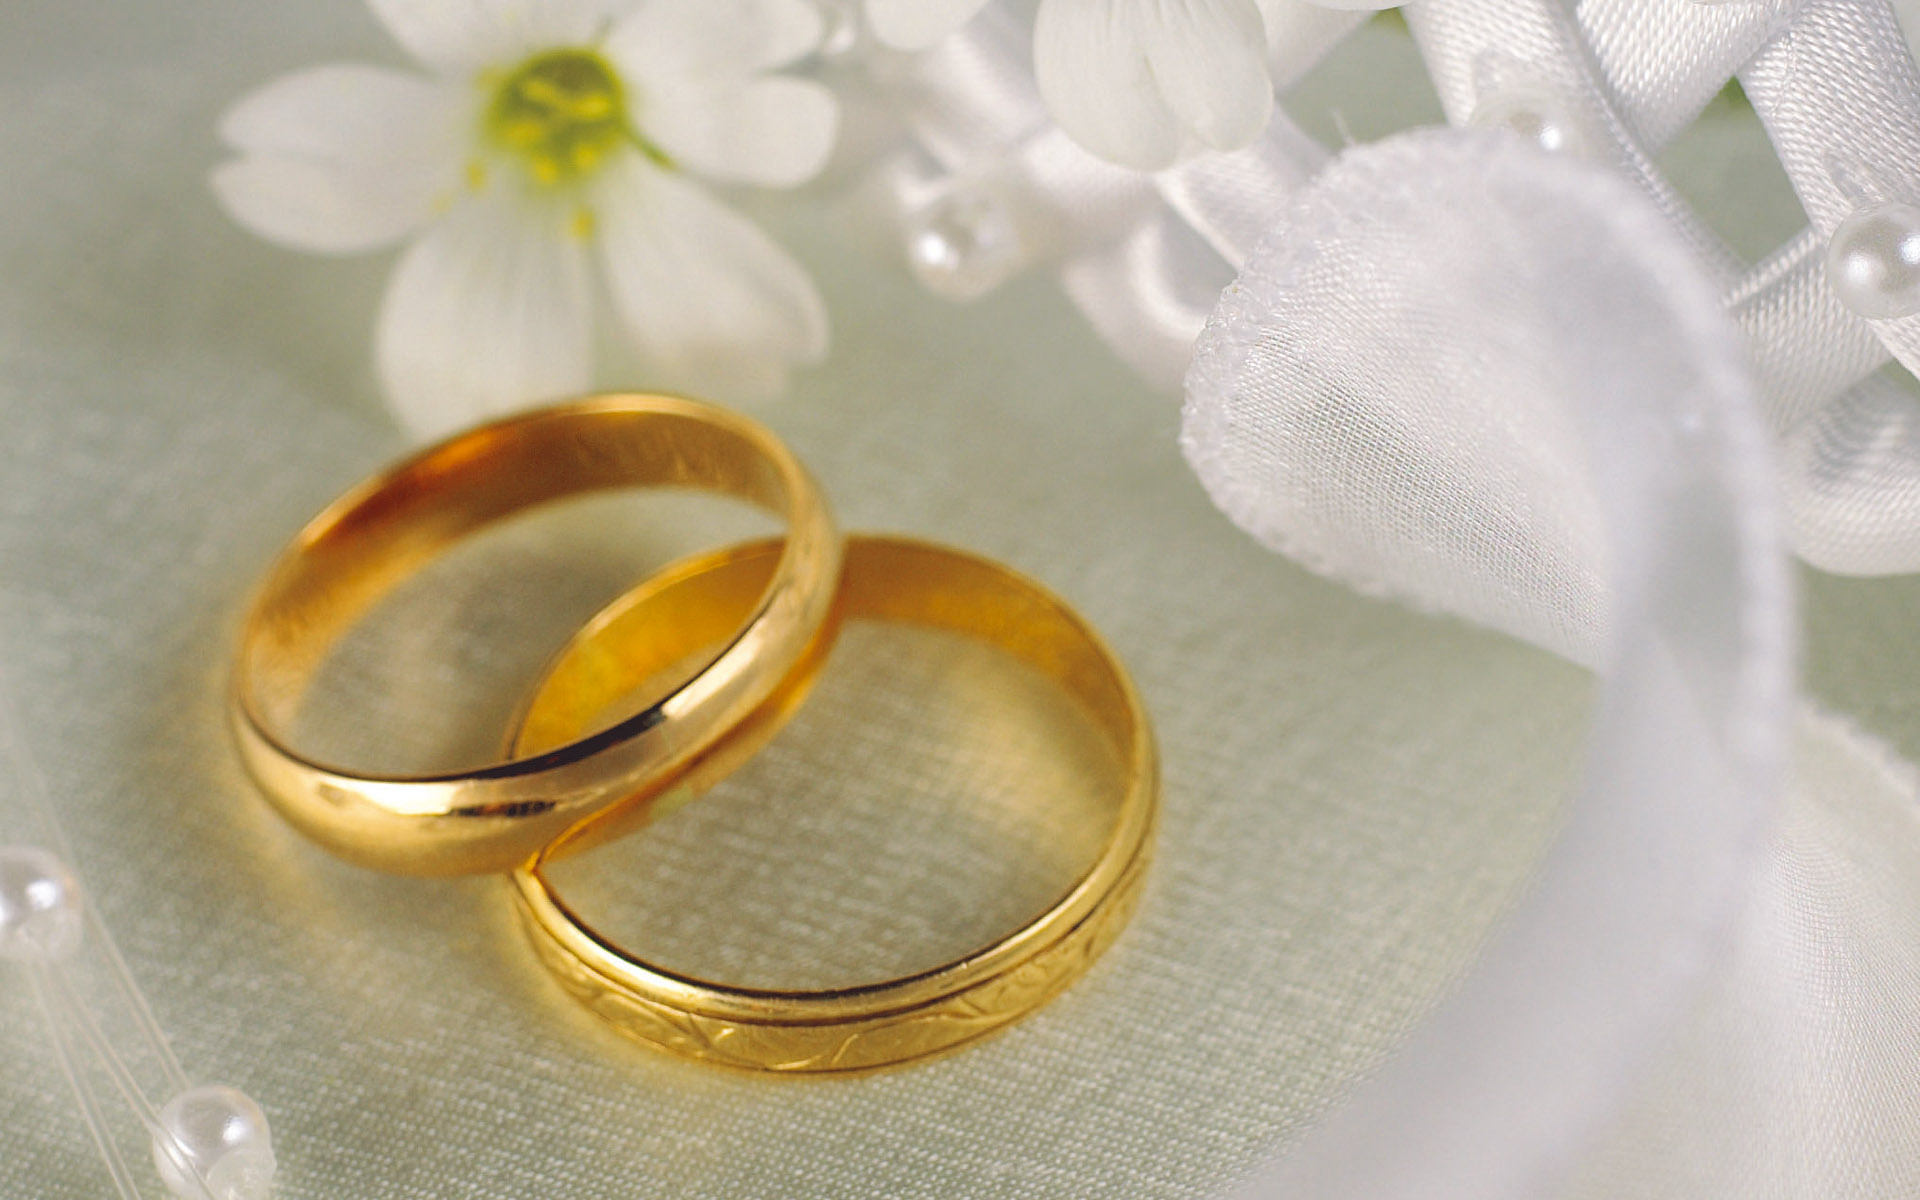 wedding rings appealing wedding rings interesting free wedding ring brushes for photoshop stunning free wedding ring clipart wonderful picture for free - Free Wedding Rings